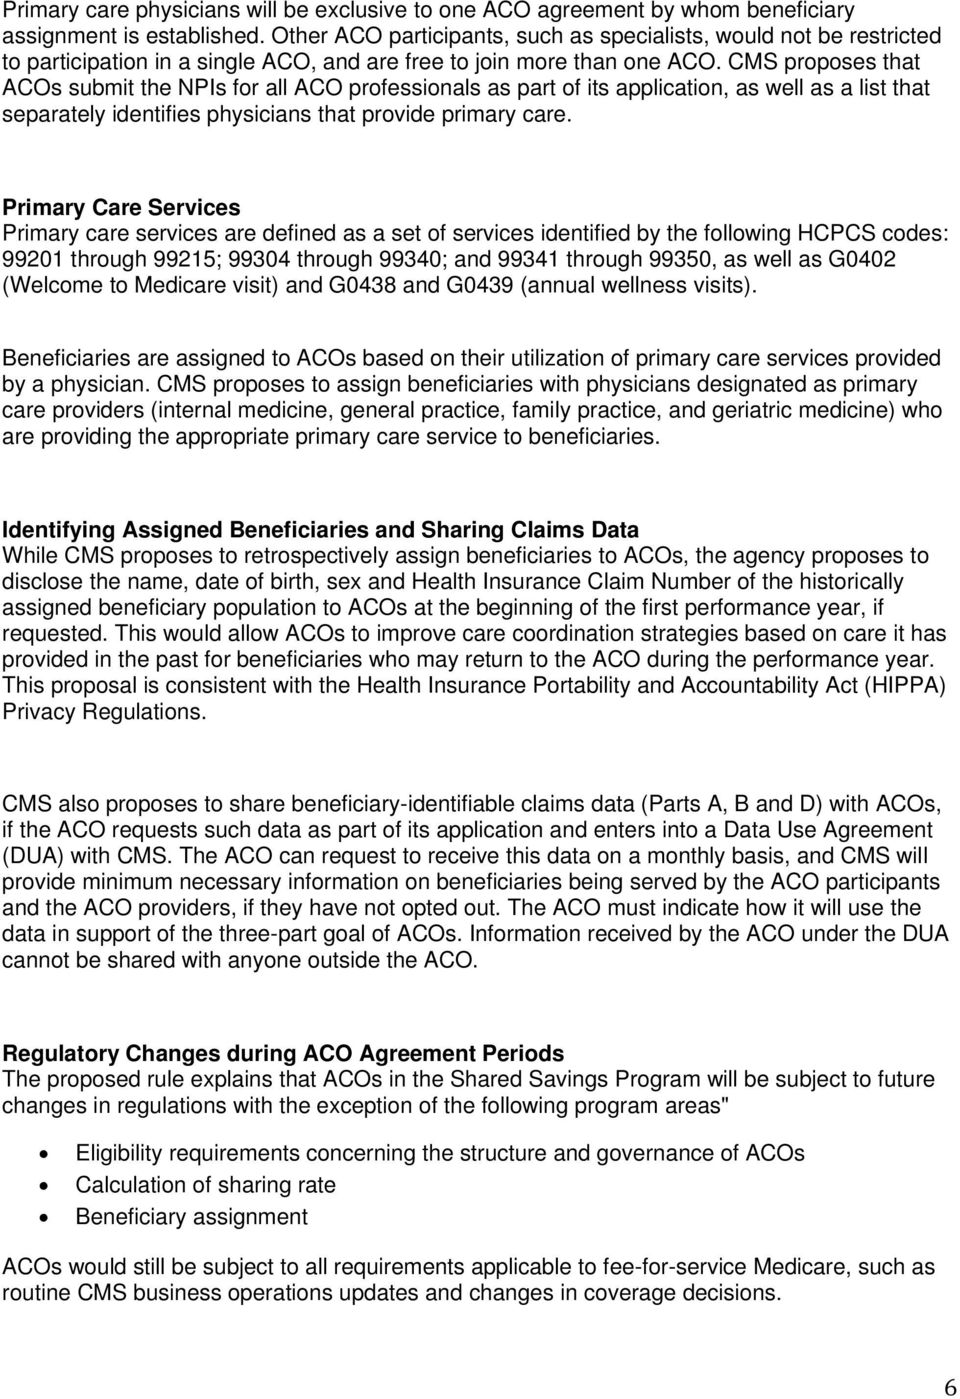 CMS proposes that ACOs submit the NPIs for all ACO professionals as part of its application, as well as a list that separately identifies physicians that provide primary care.